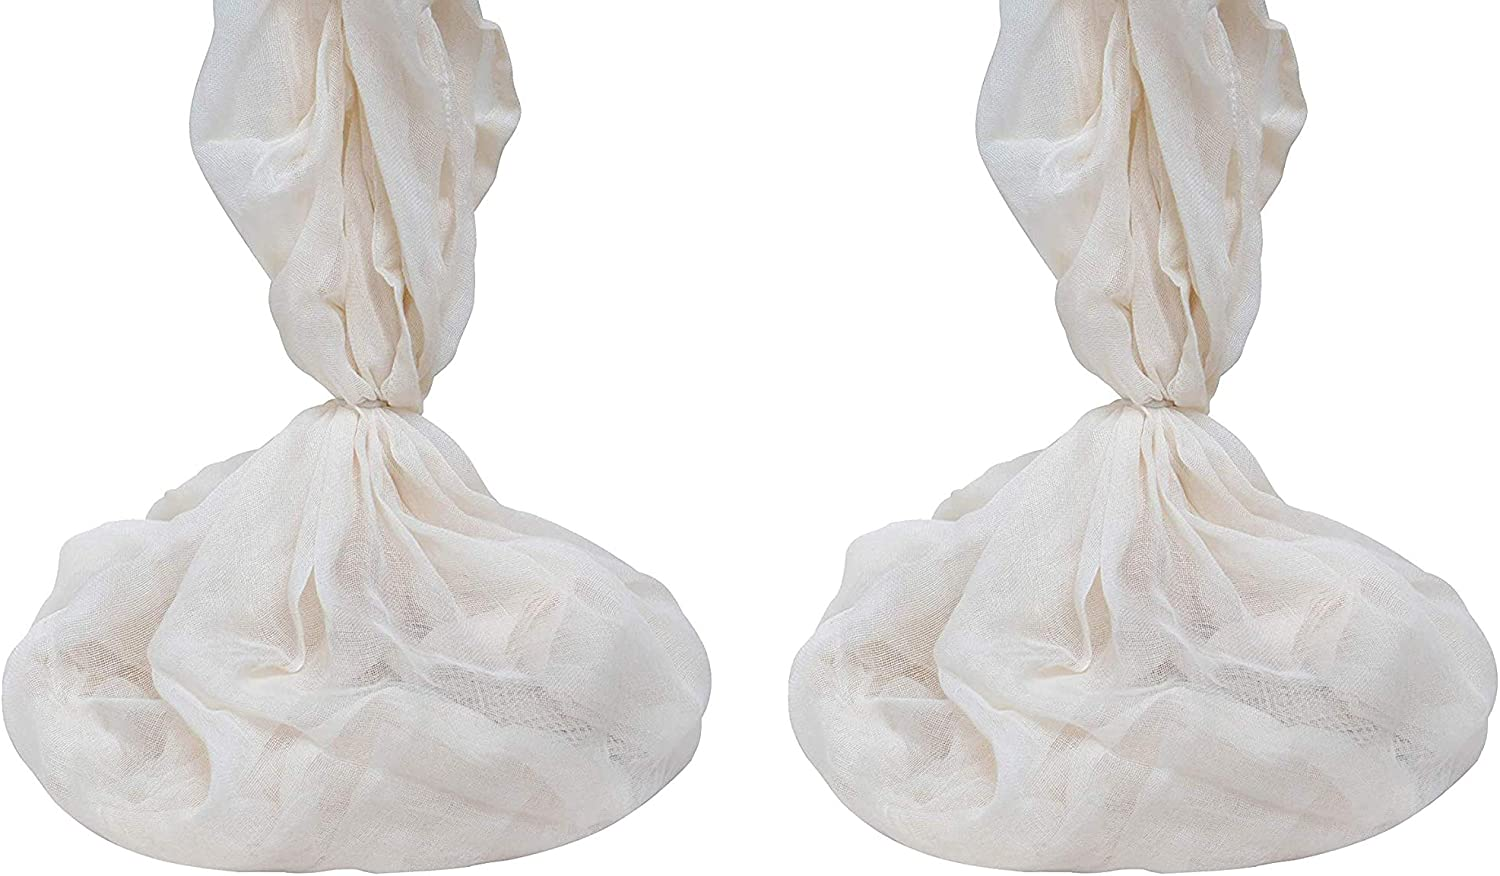 """Reusable Organic Cotton Cheese Cloth - Cheesecloth for Straining Yogurt, Tofu, Nut Milk, Smoothie, Cheese, Jelly, Paneer - Perfect for Roasting Turkey - Washable - GOTS Certified - 36""""x36"""" (Set of 2)"""